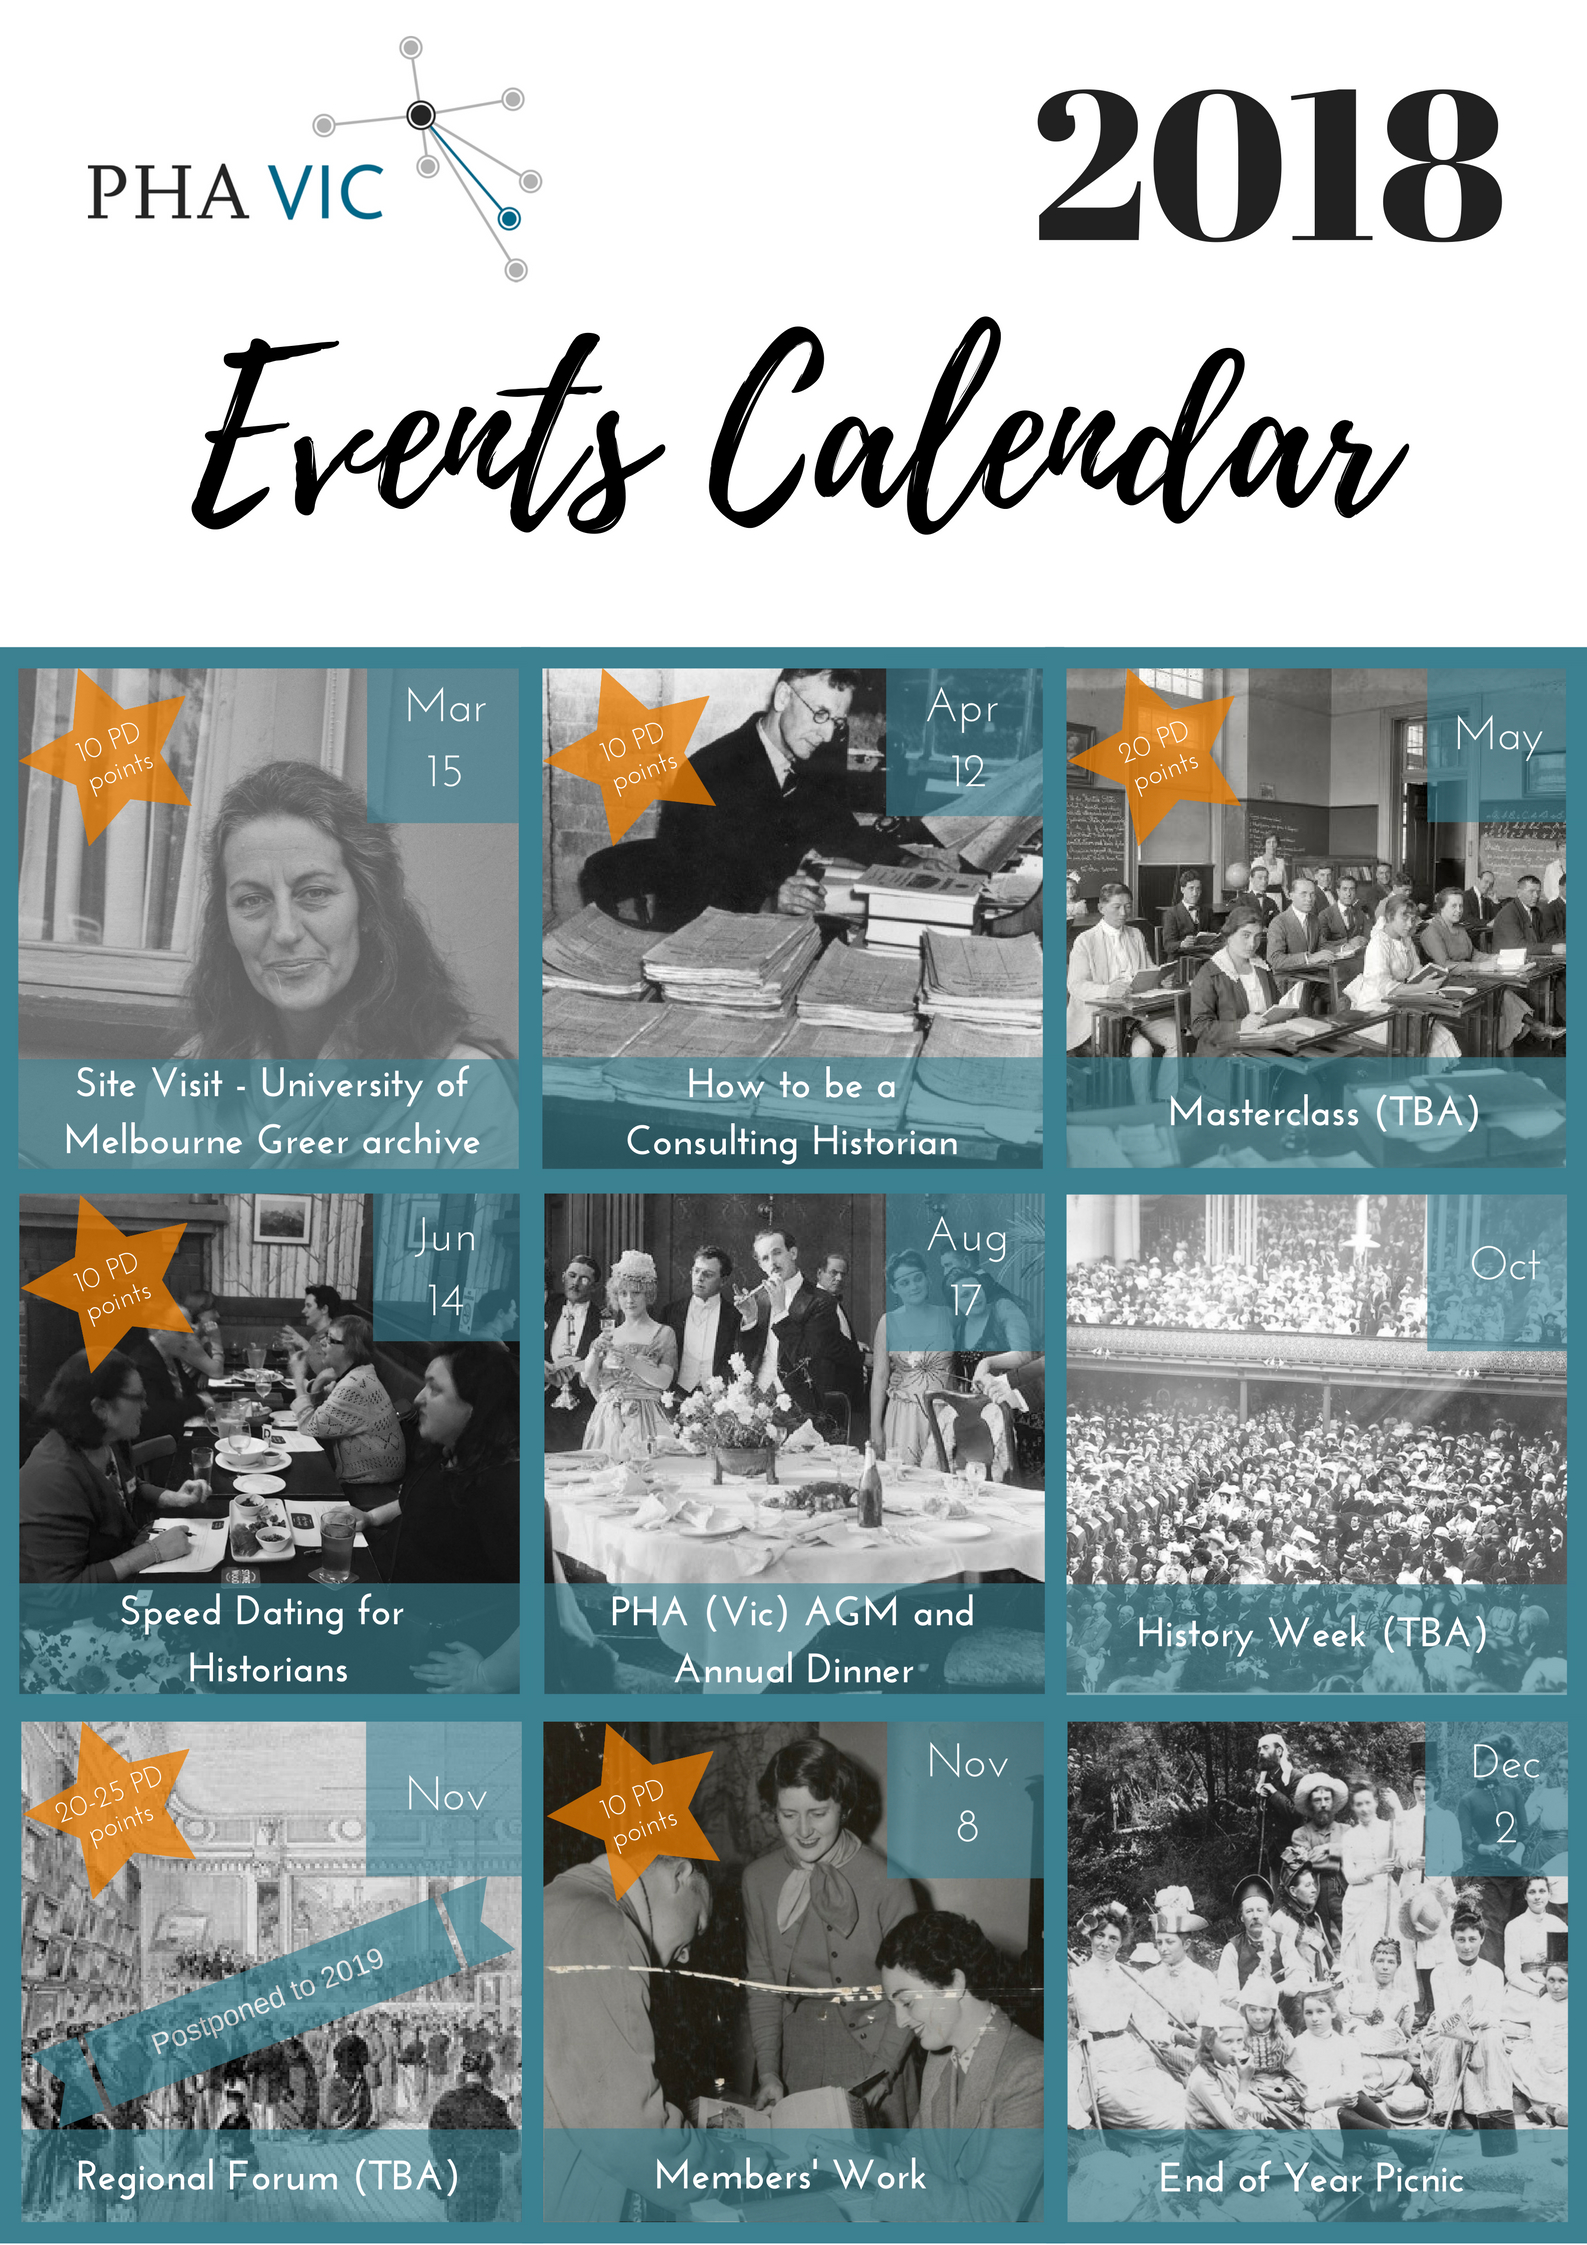 2018 Calendar of Events.jpg